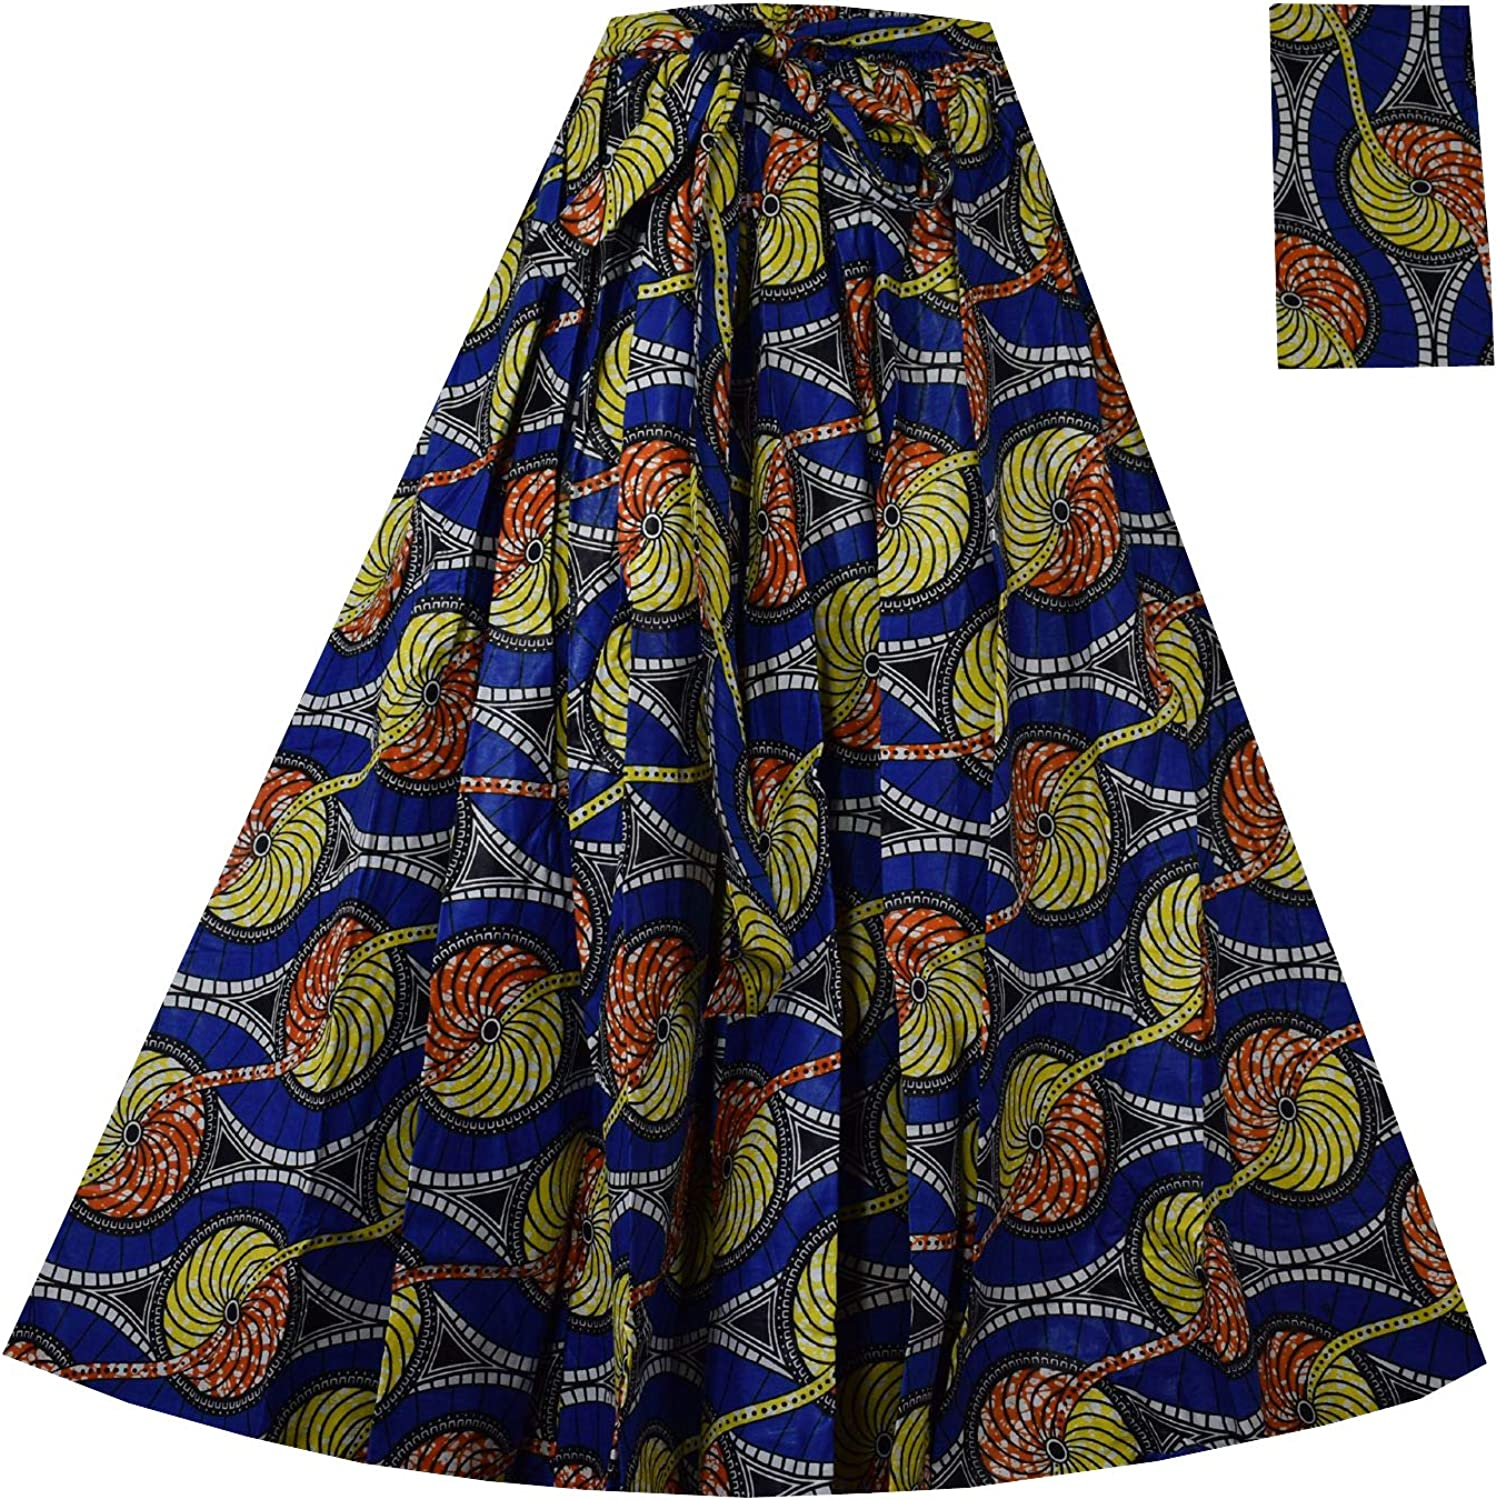 Decoraapparel Anakara Skirts African Wax Long Women's Flared Plus Size Skirts